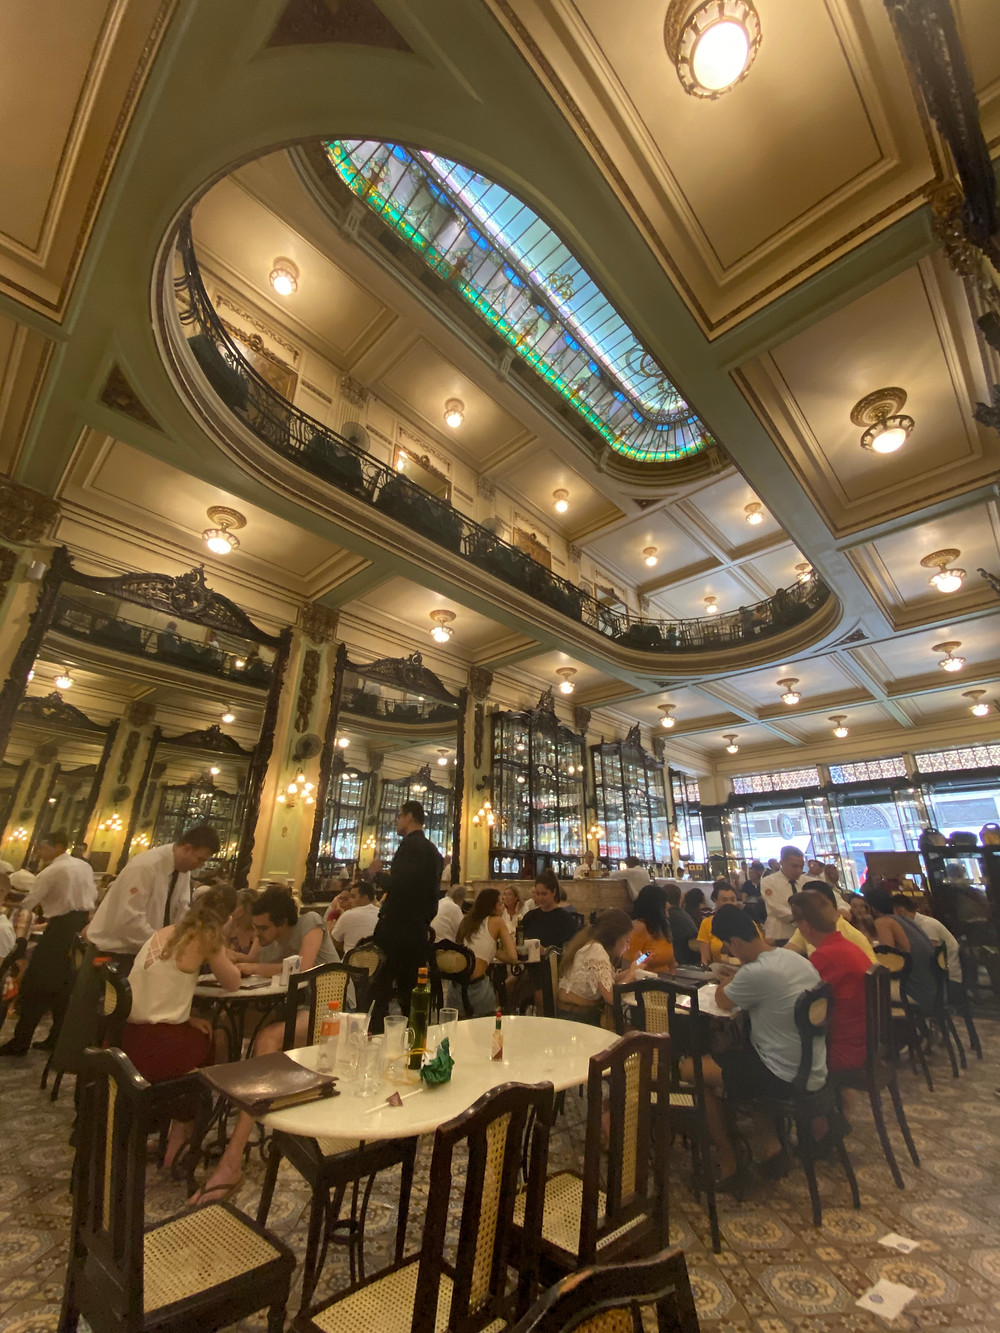 Confeitaria Colombo has several locations in Rio, but the Centro one is a must-visit and experience.